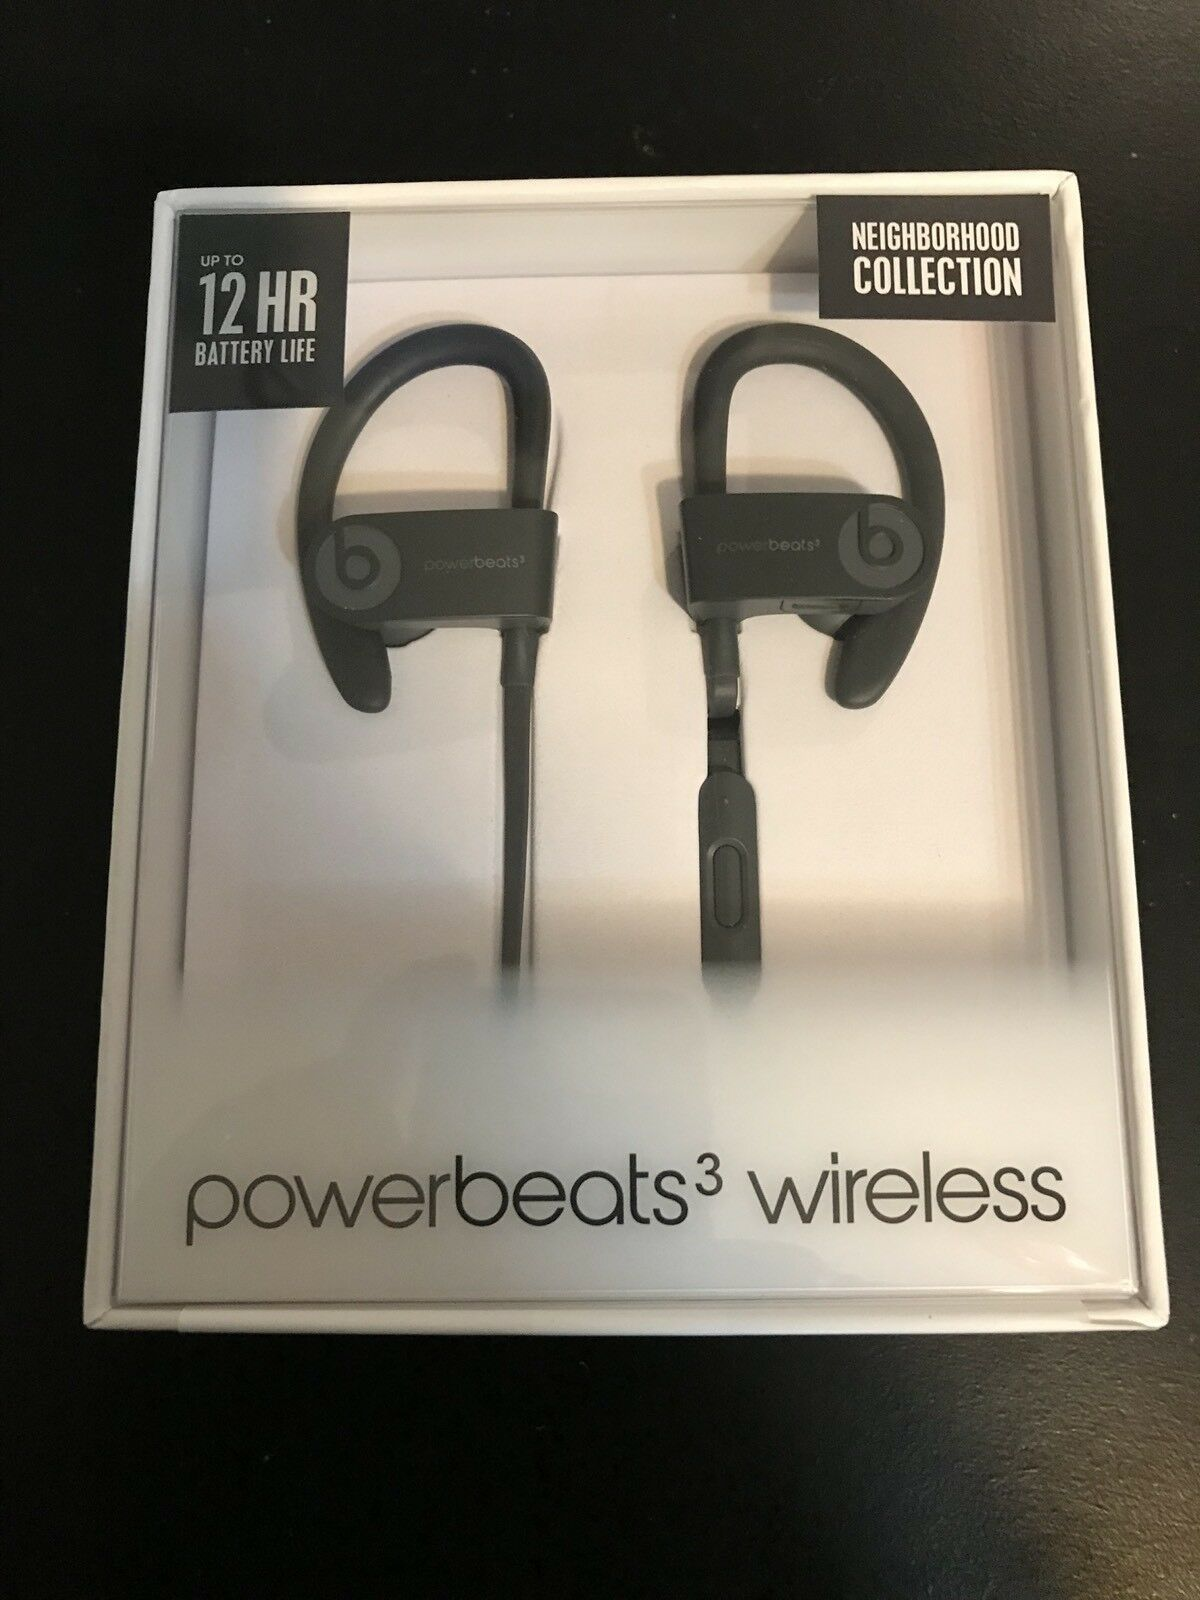 Powerbeats3 Wireless Earphones - Neighborhood Collection - Asphalt Gray NEW